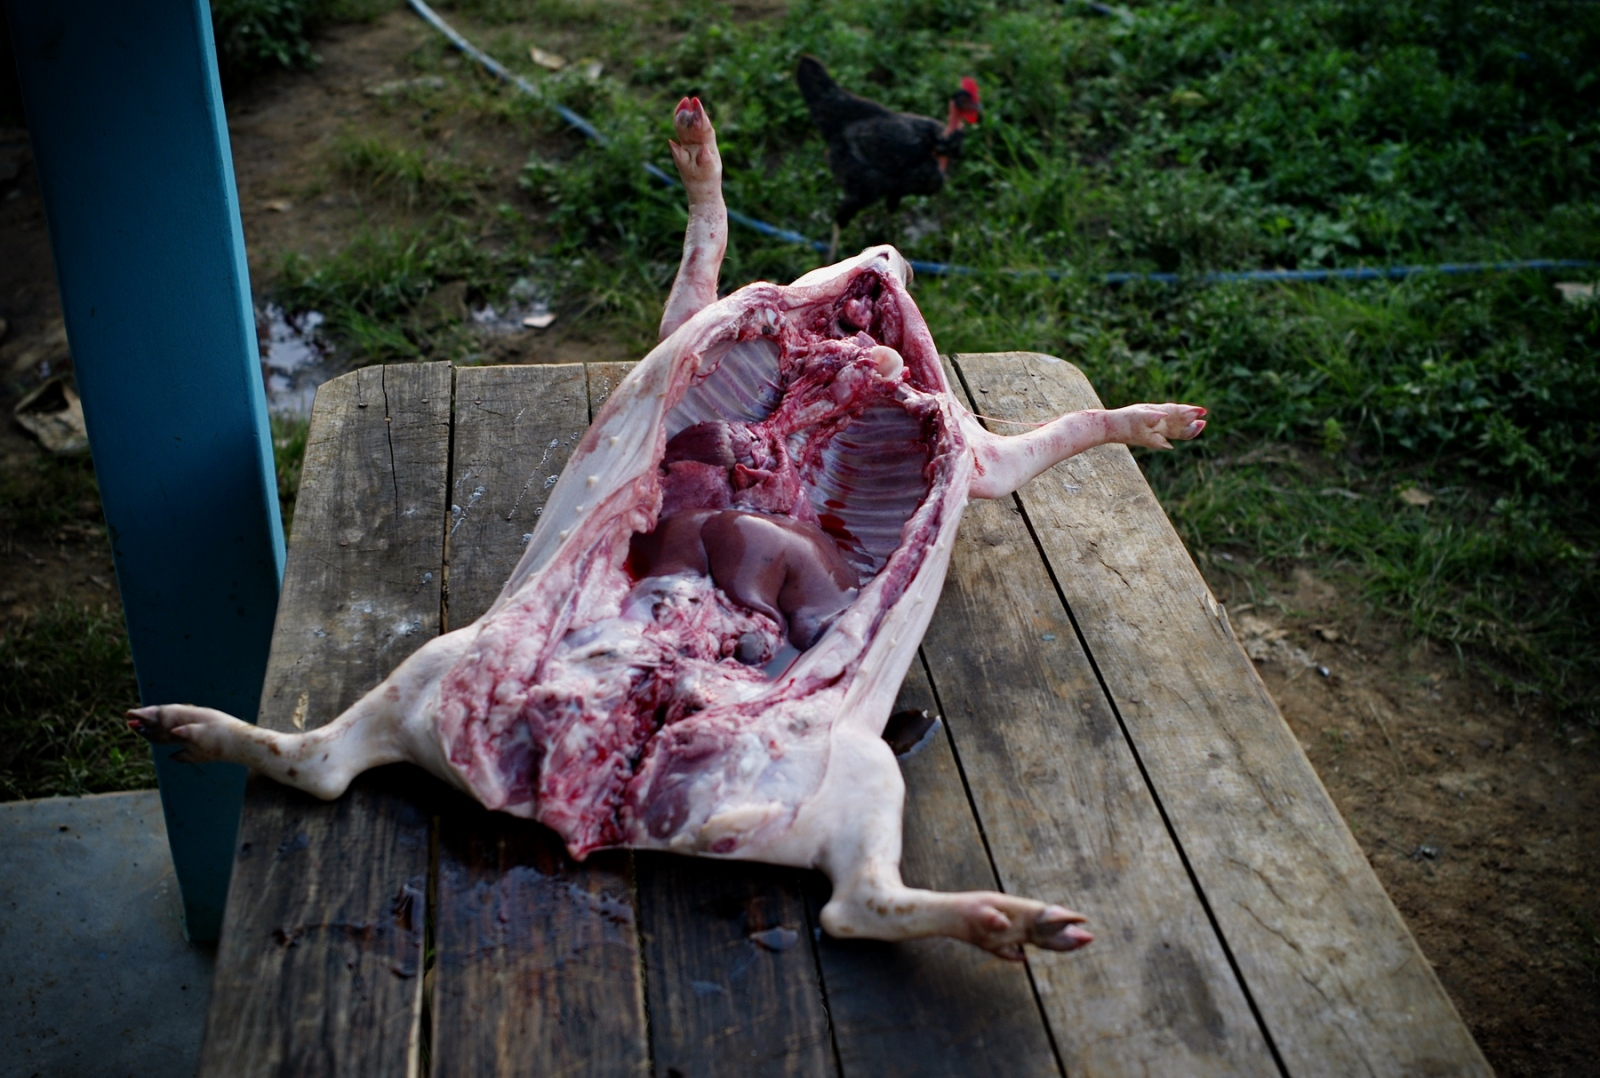 A freshly slaughtered pig is preparedis slunch for the tobacco farmersin Vinales - farming village two hours drive from Havana.